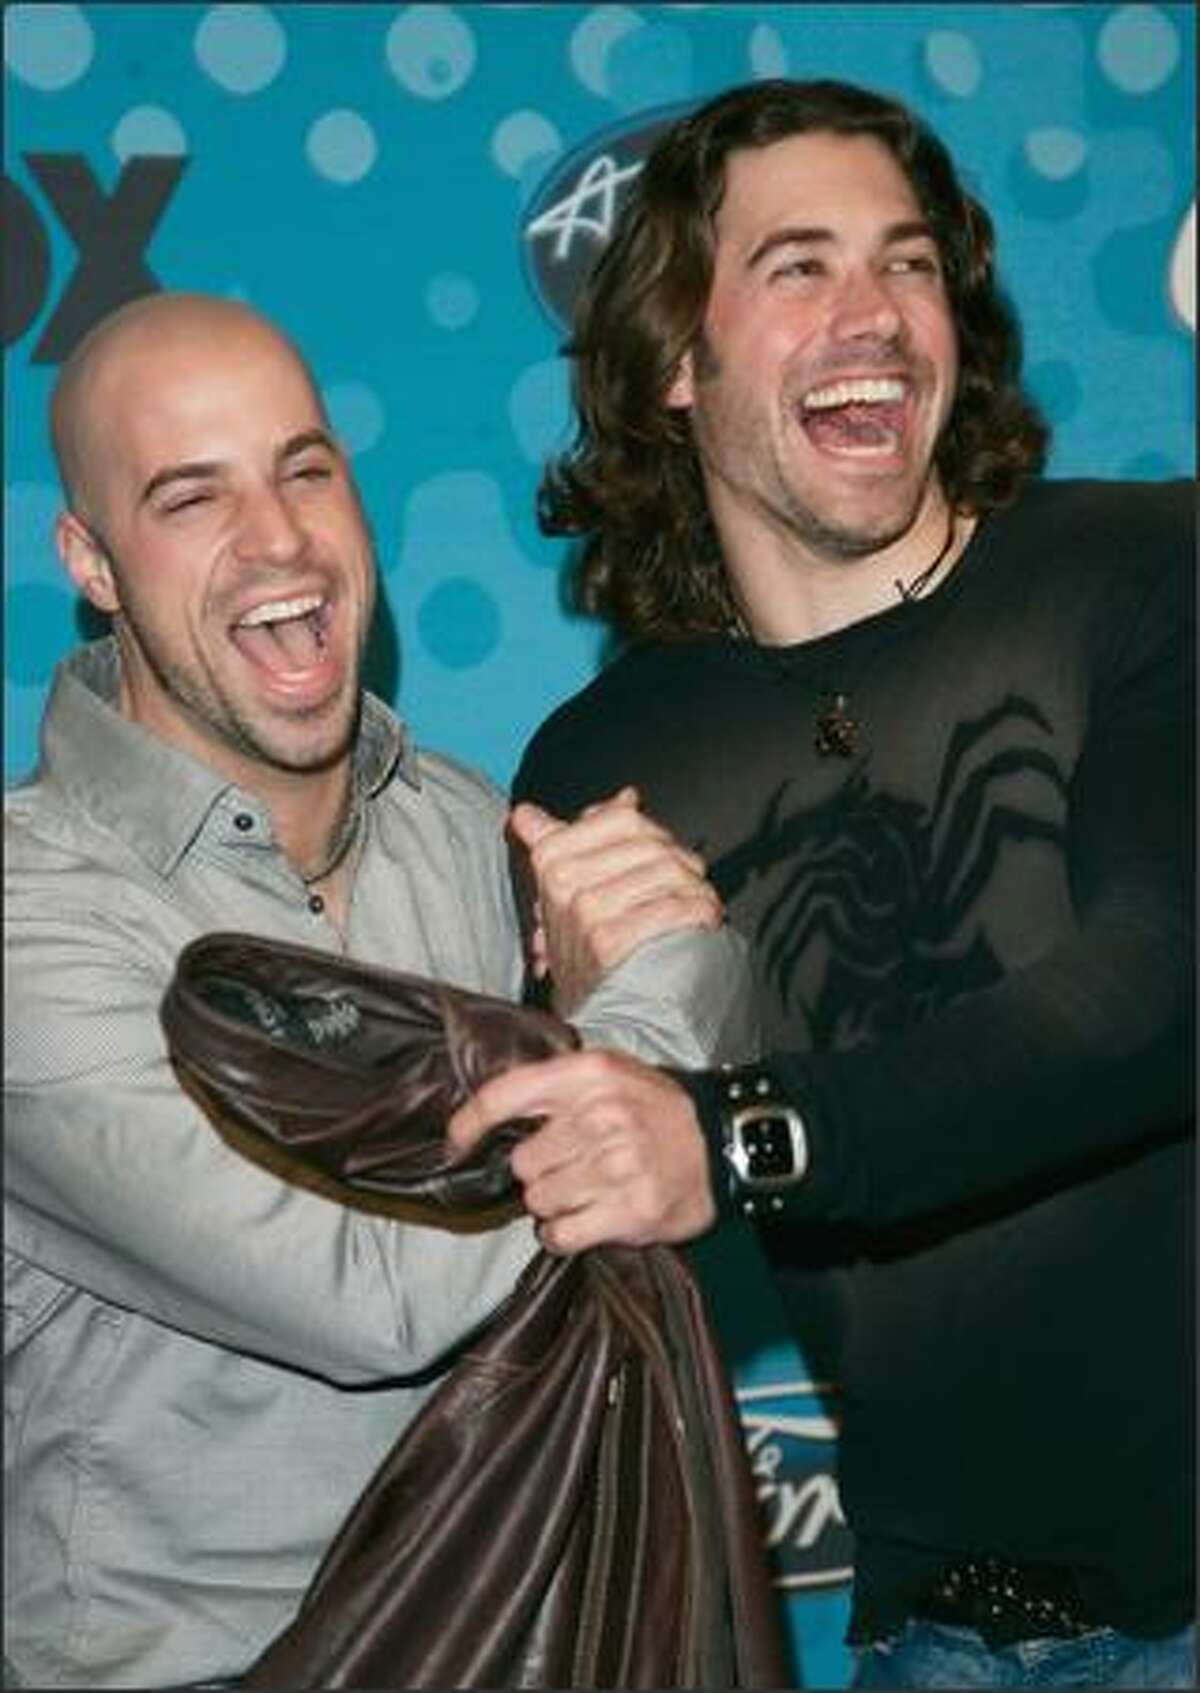 """""""American Idol"""" contestants Chris Daughtry, 26, and Ace Young, 25, are happy campers at the """"American Idol"""" Final 12 Party in Hollywood on Thursday. The party included a reunion for season four contestants (and long-haired rockers) Constantine Meroulis and Bo Bice."""